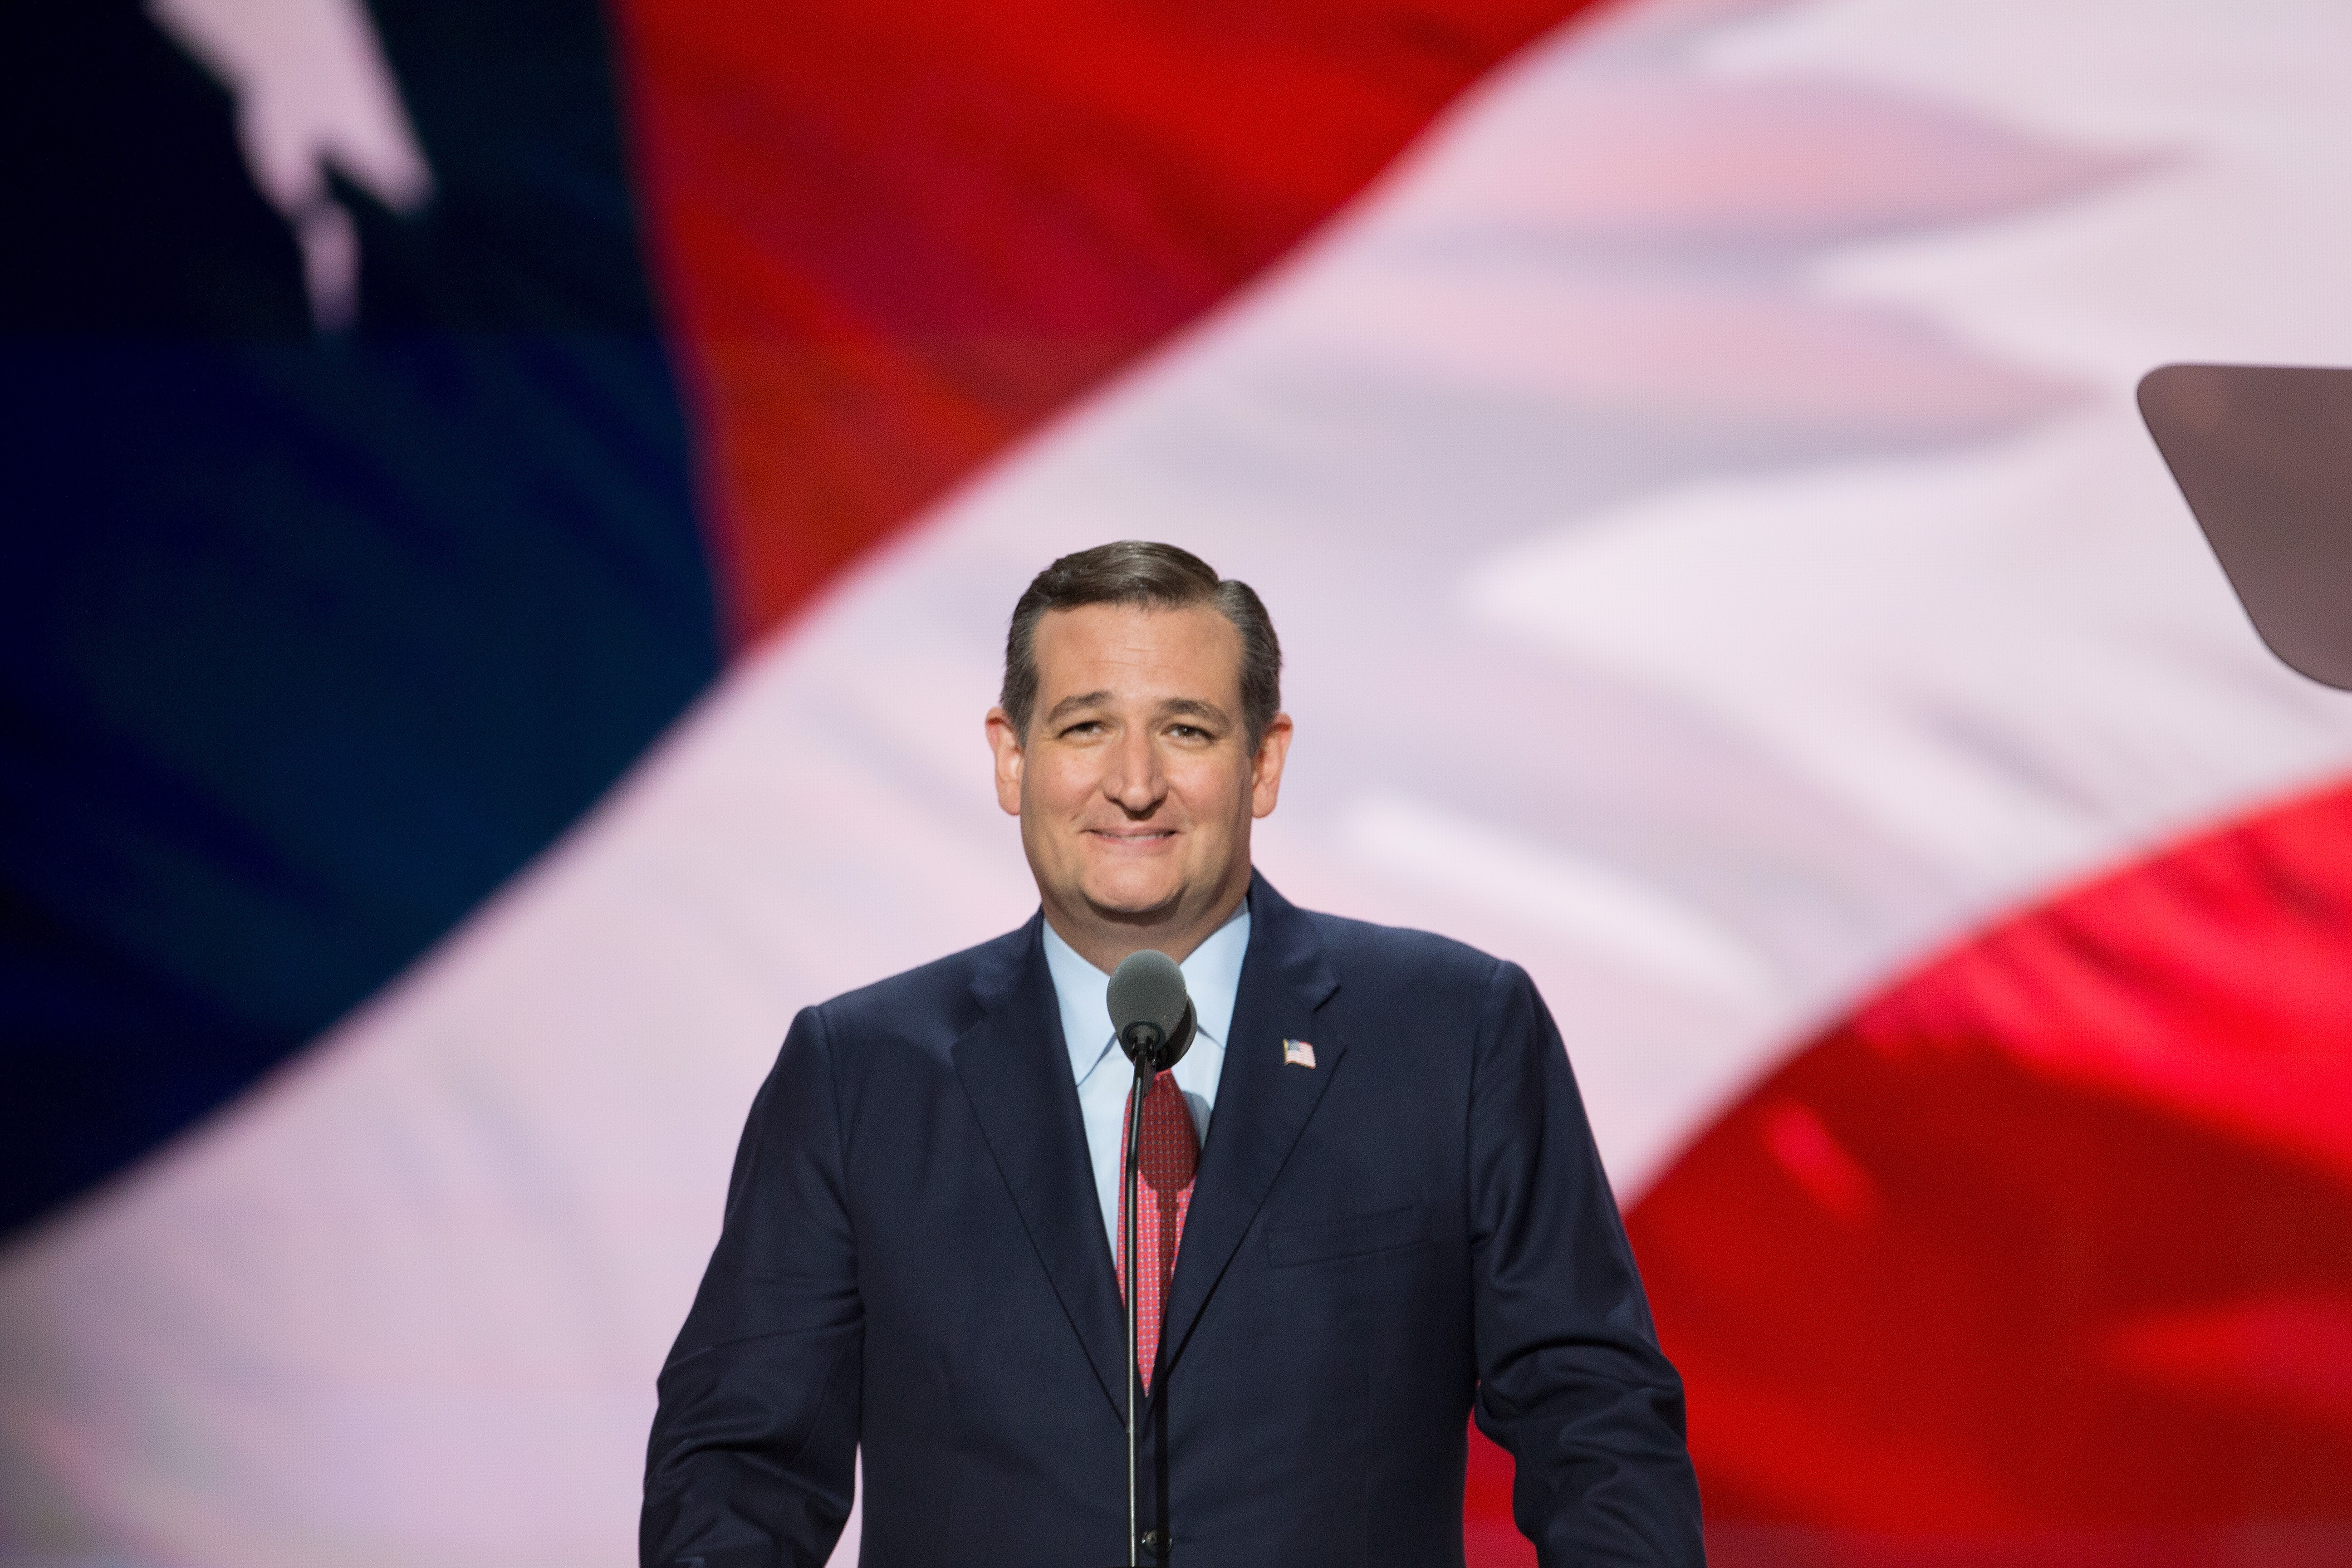 ted cruz is still favored even with quinnipiac poll showing beto o